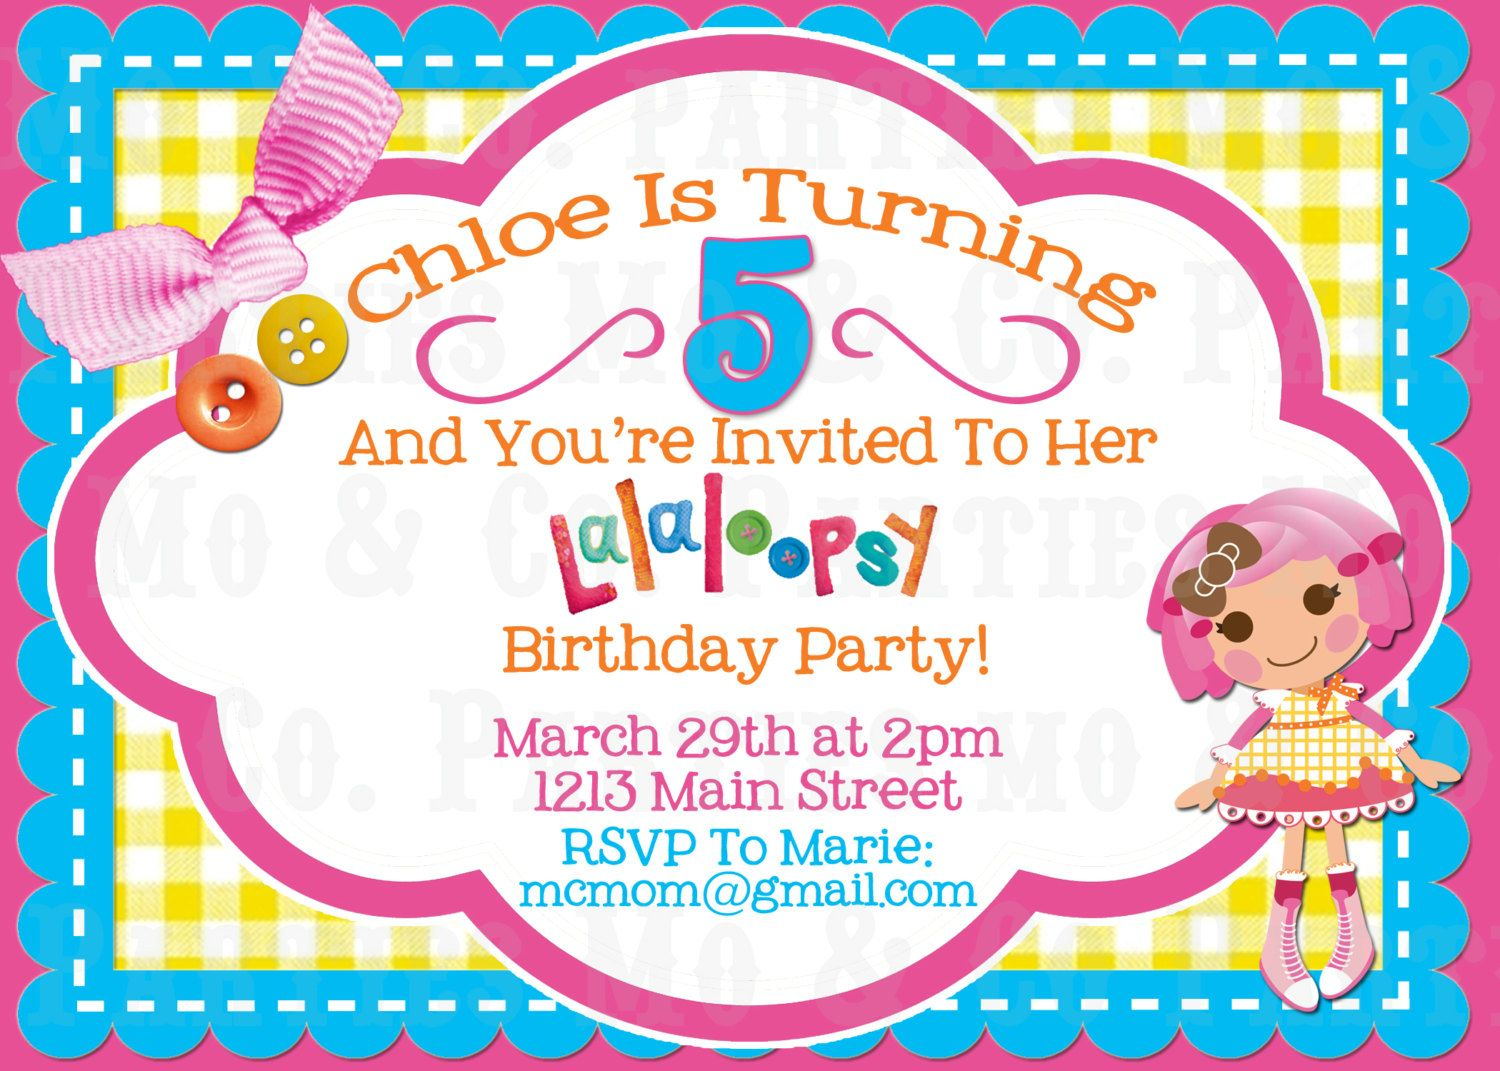 Lalaloopsy Birthday Invitations for Aimee\'s party | Birthday ideas ...